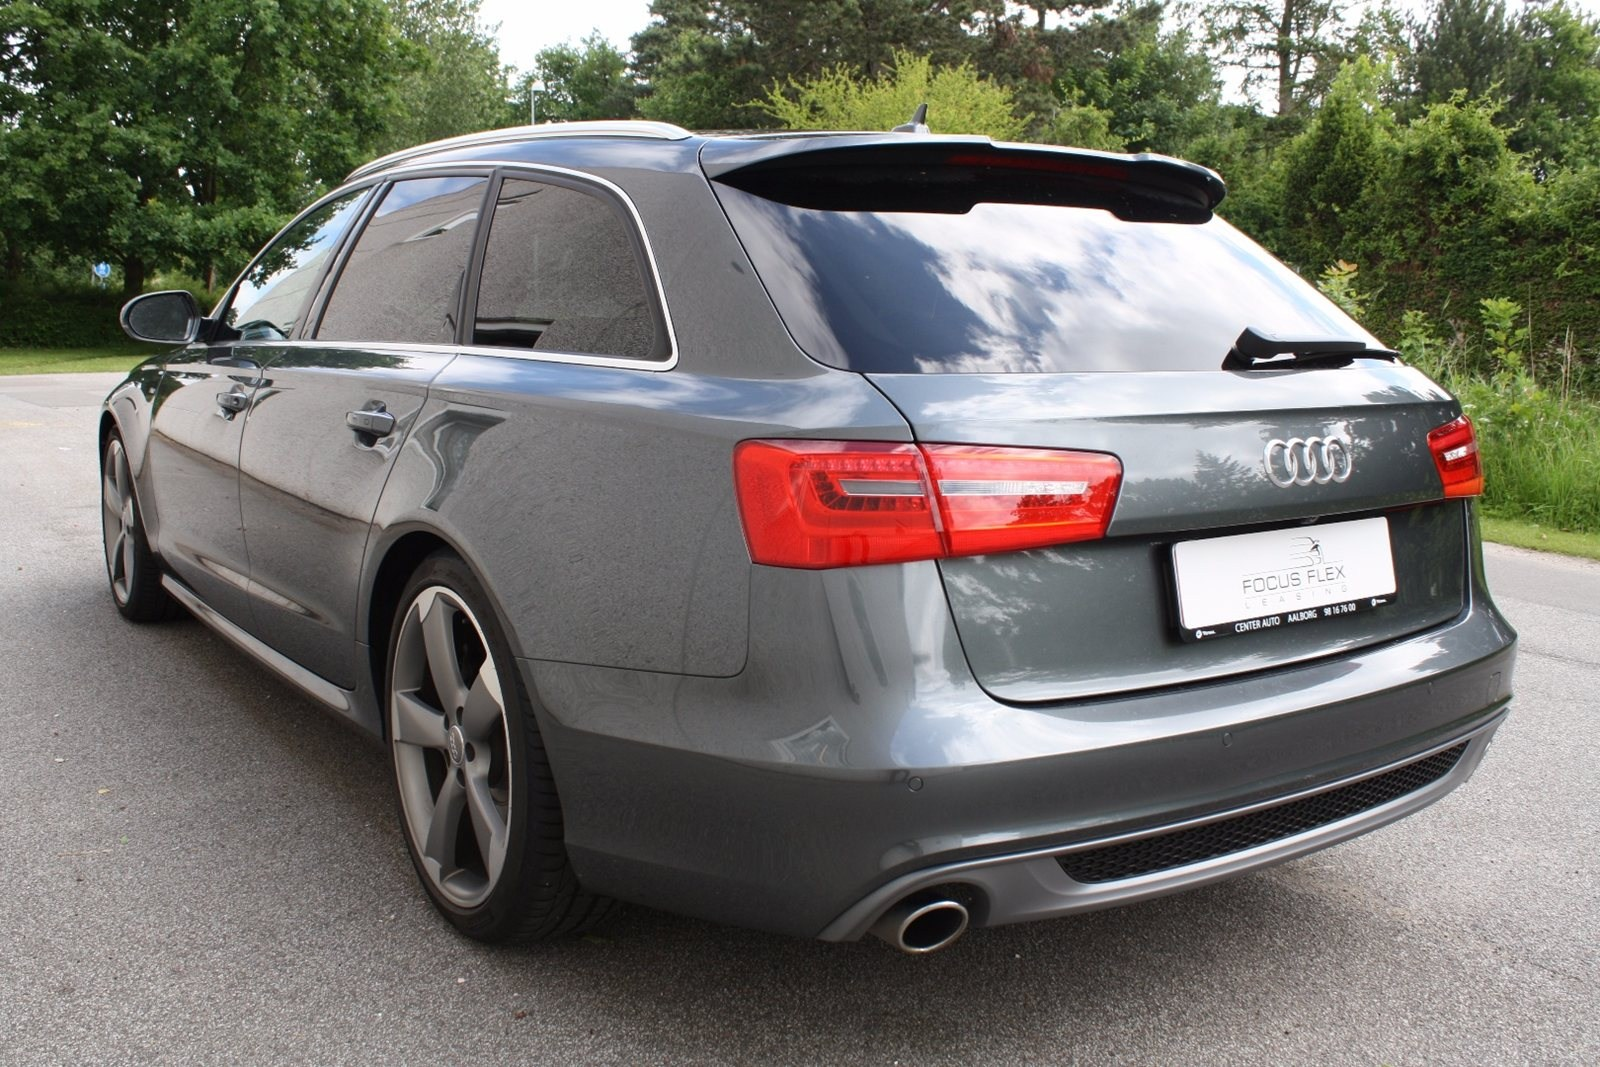 audi a6 2012 3 0 tdi avant quattro flexleasing leasingoffer. Black Bedroom Furniture Sets. Home Design Ideas